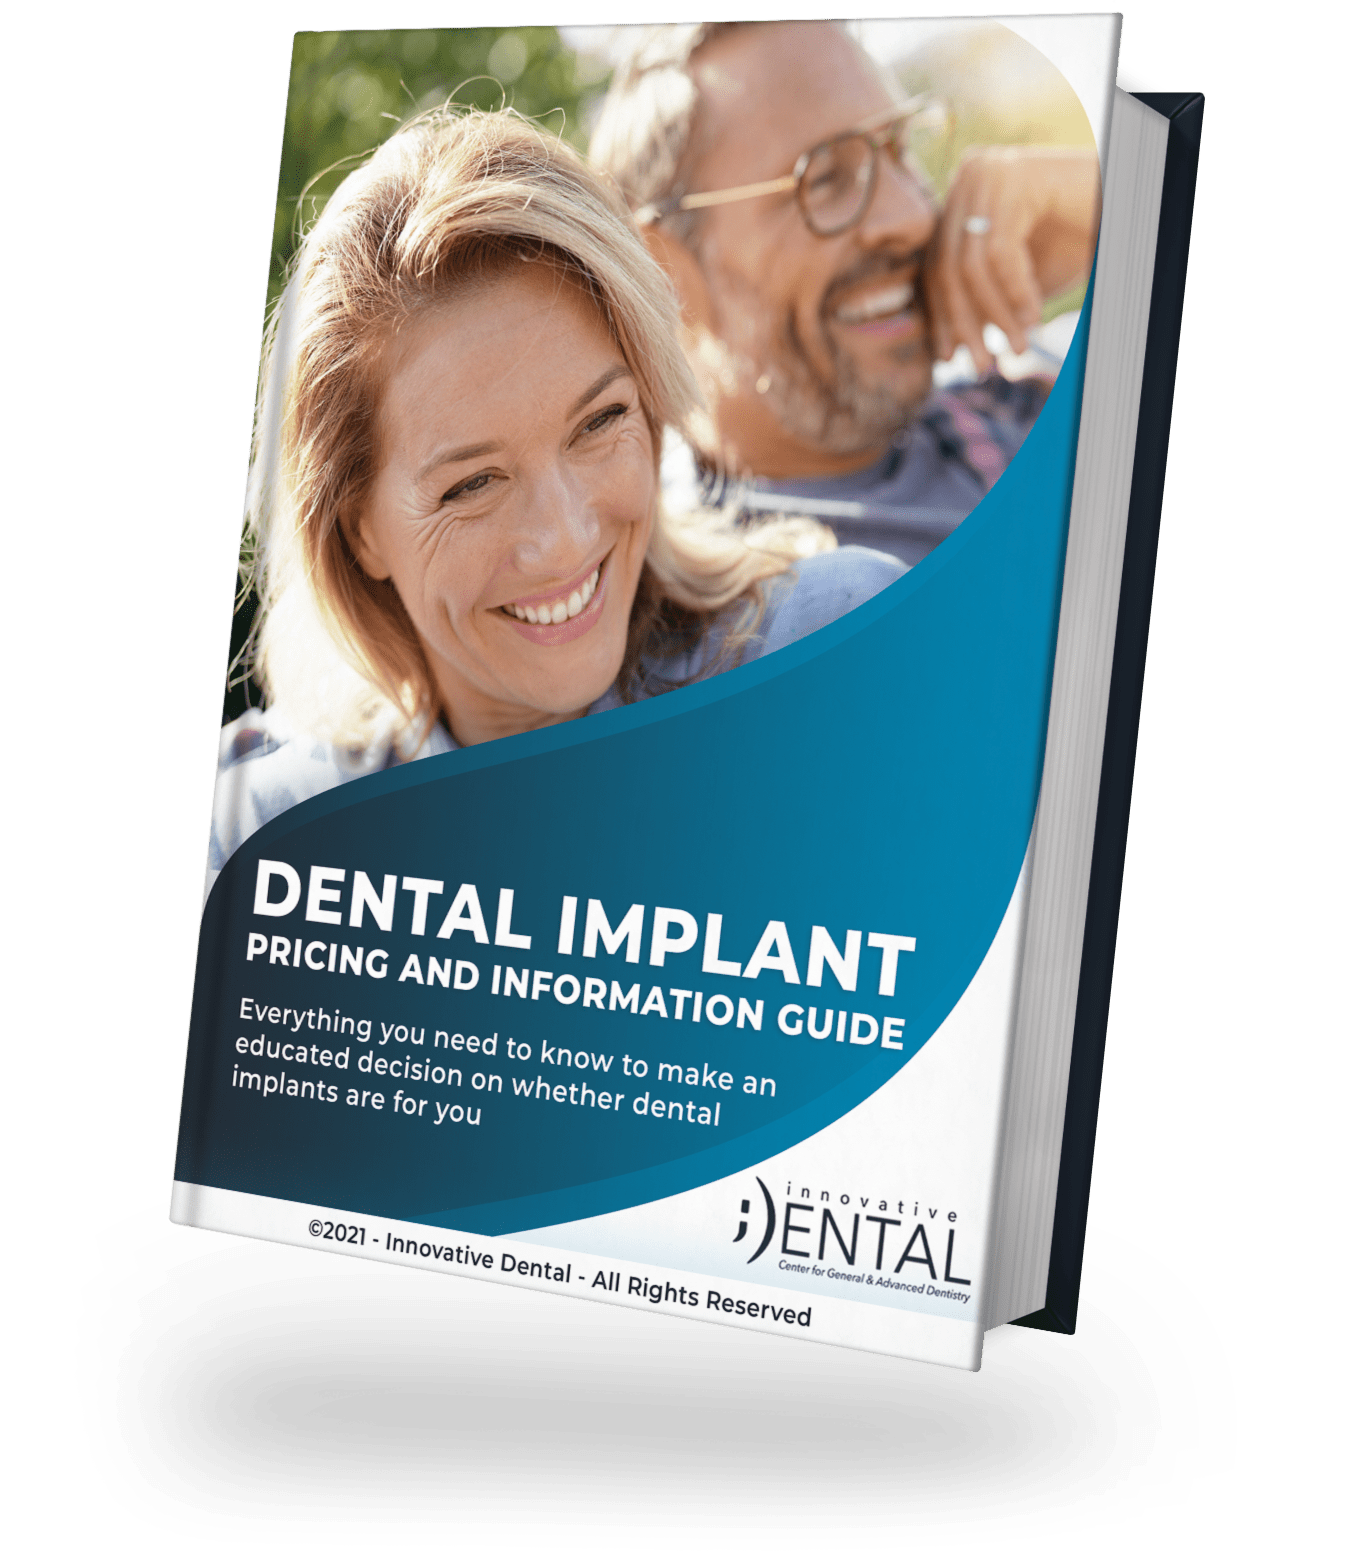 Photo of the Innovative Dental Implant Pricing and Information Guide